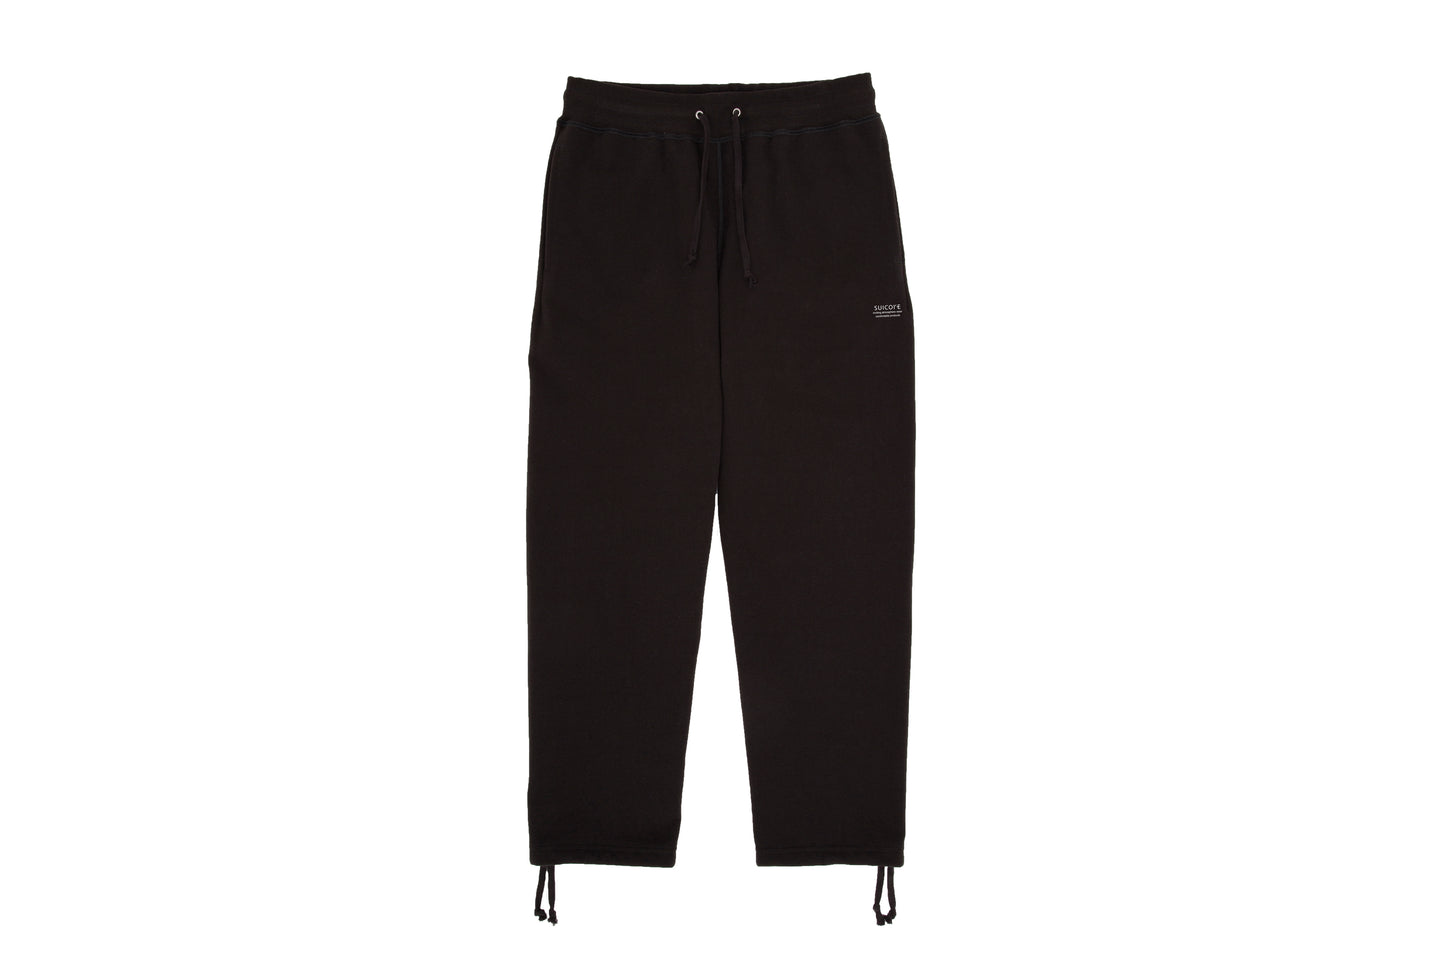 SUICOKE-CLOTHING-SWEATPANTS F - Ink Black-O2 Official Webstore Spring2021